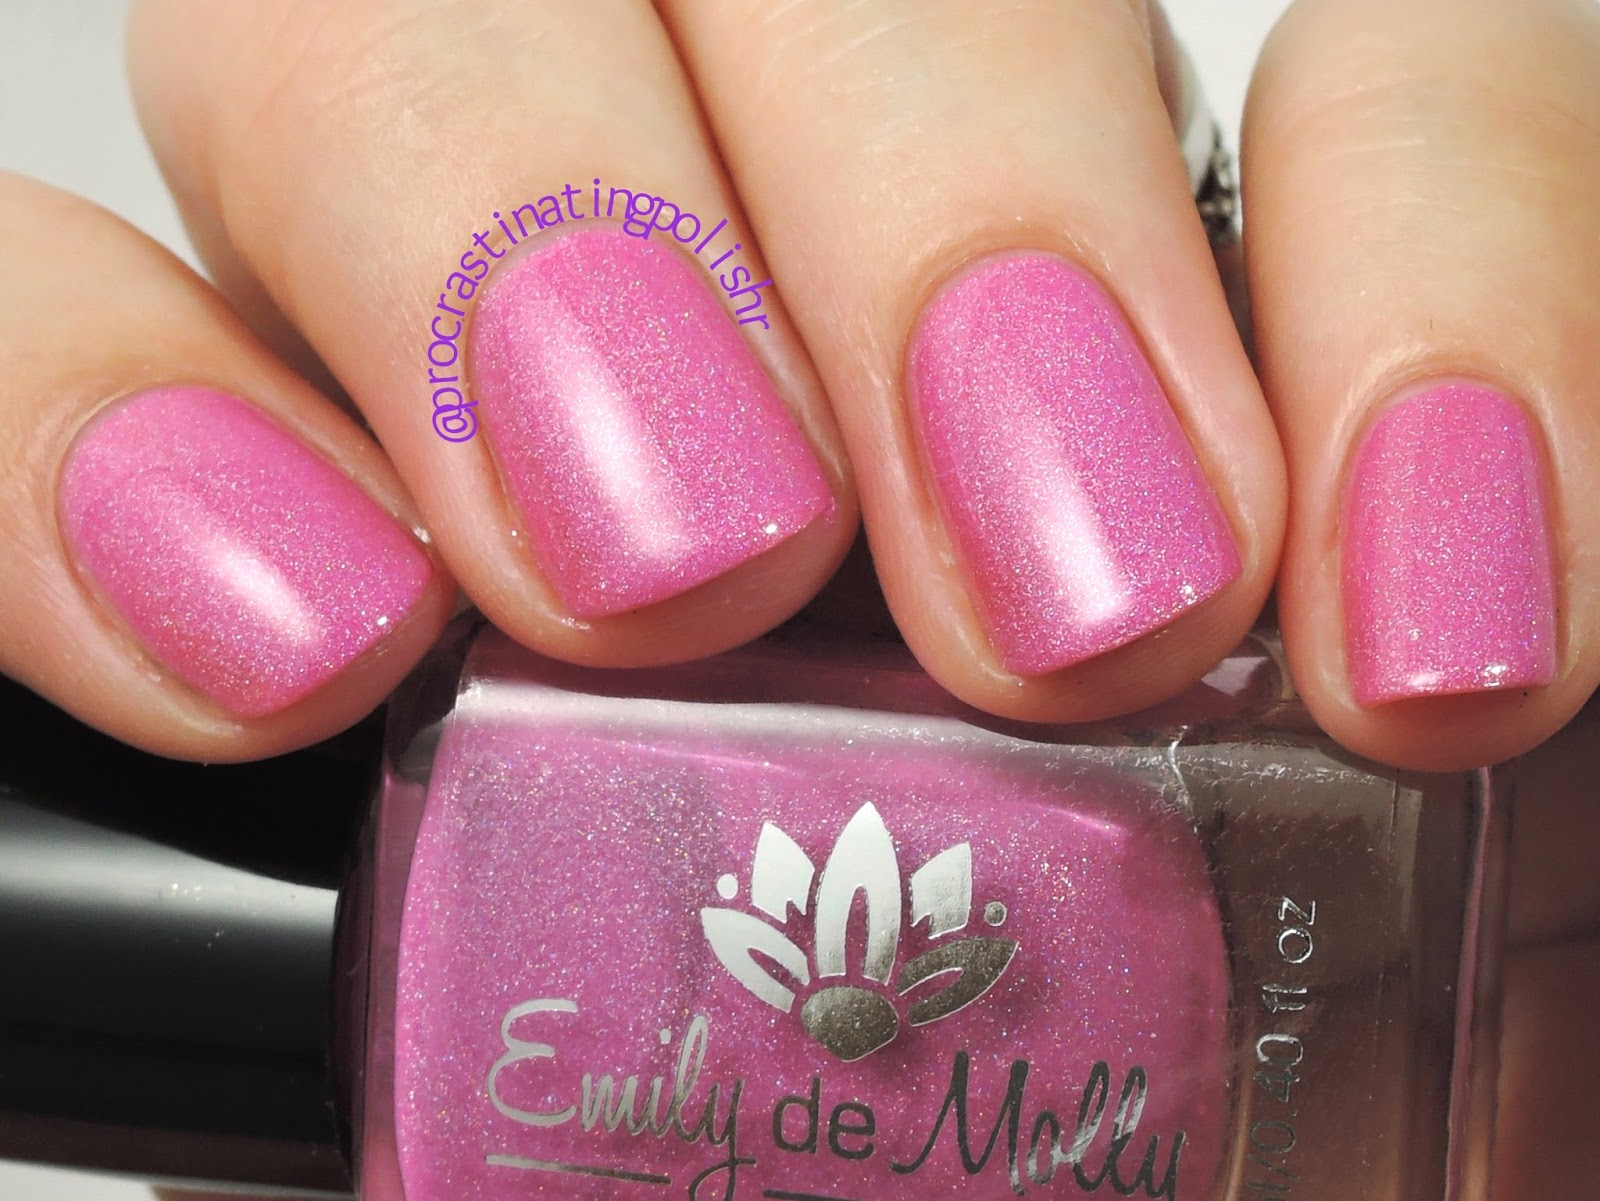 Emily de Molly - You Saved my Life | Pink scattered holo